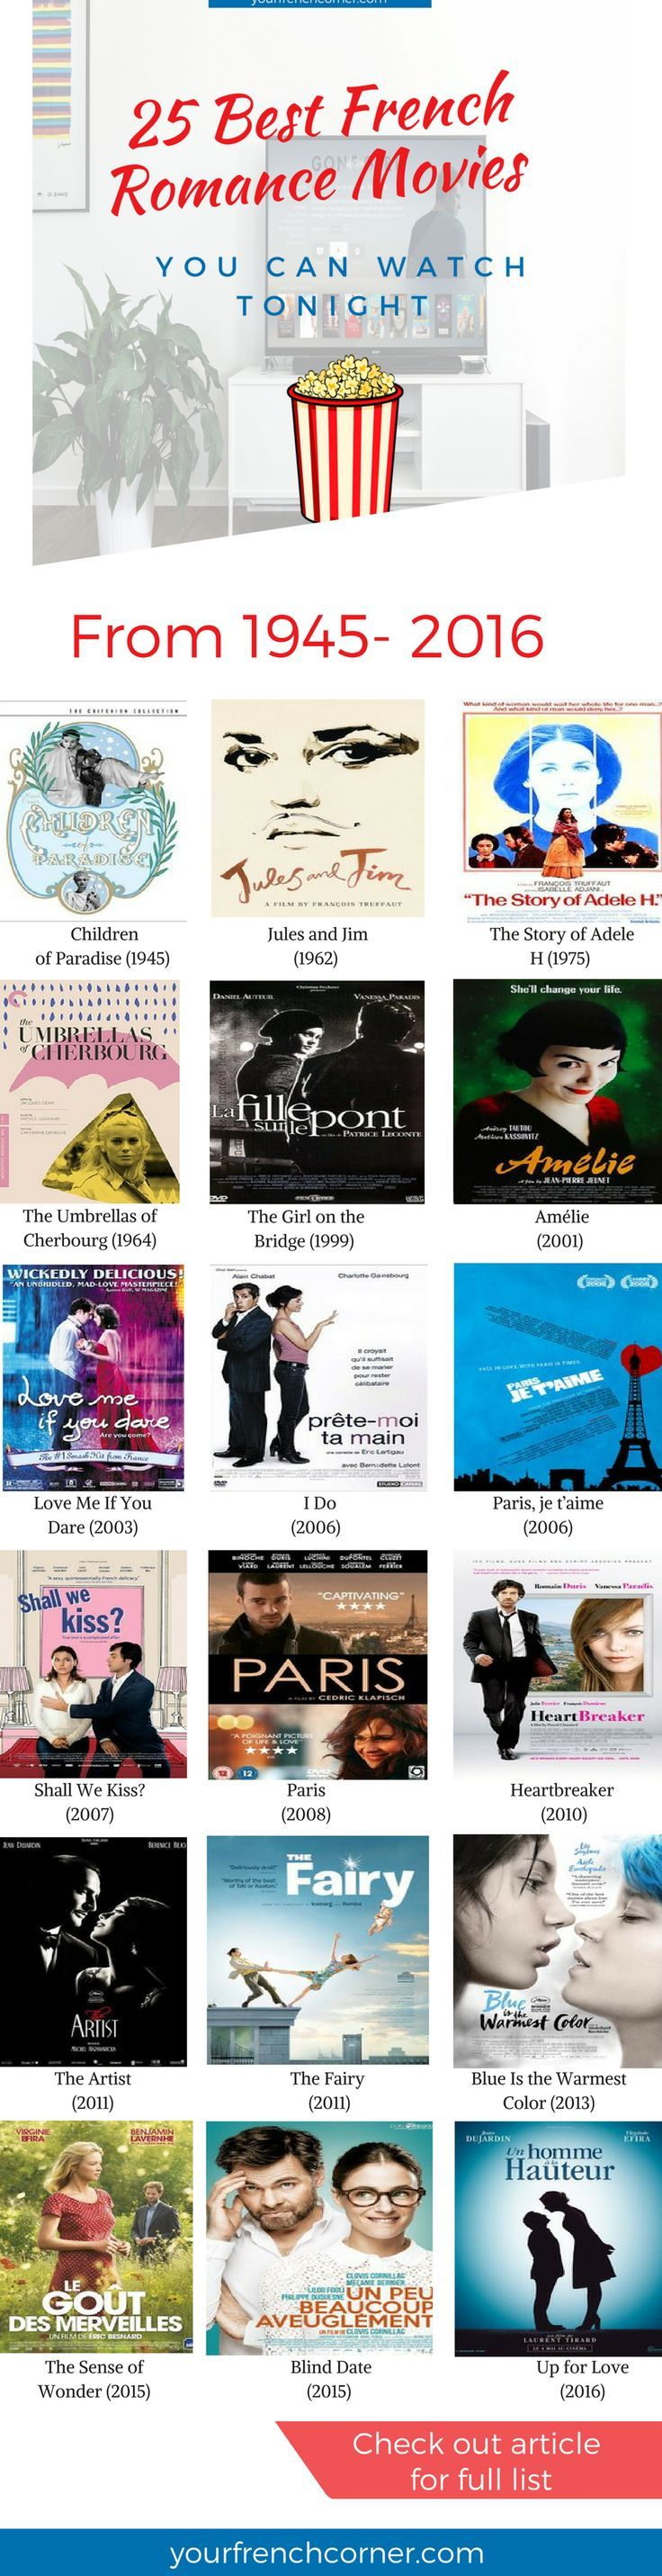 25 Best French Romance Movies You Can Watch Tonight | Repin for later   #learningfrench #francophile #frenchmovies